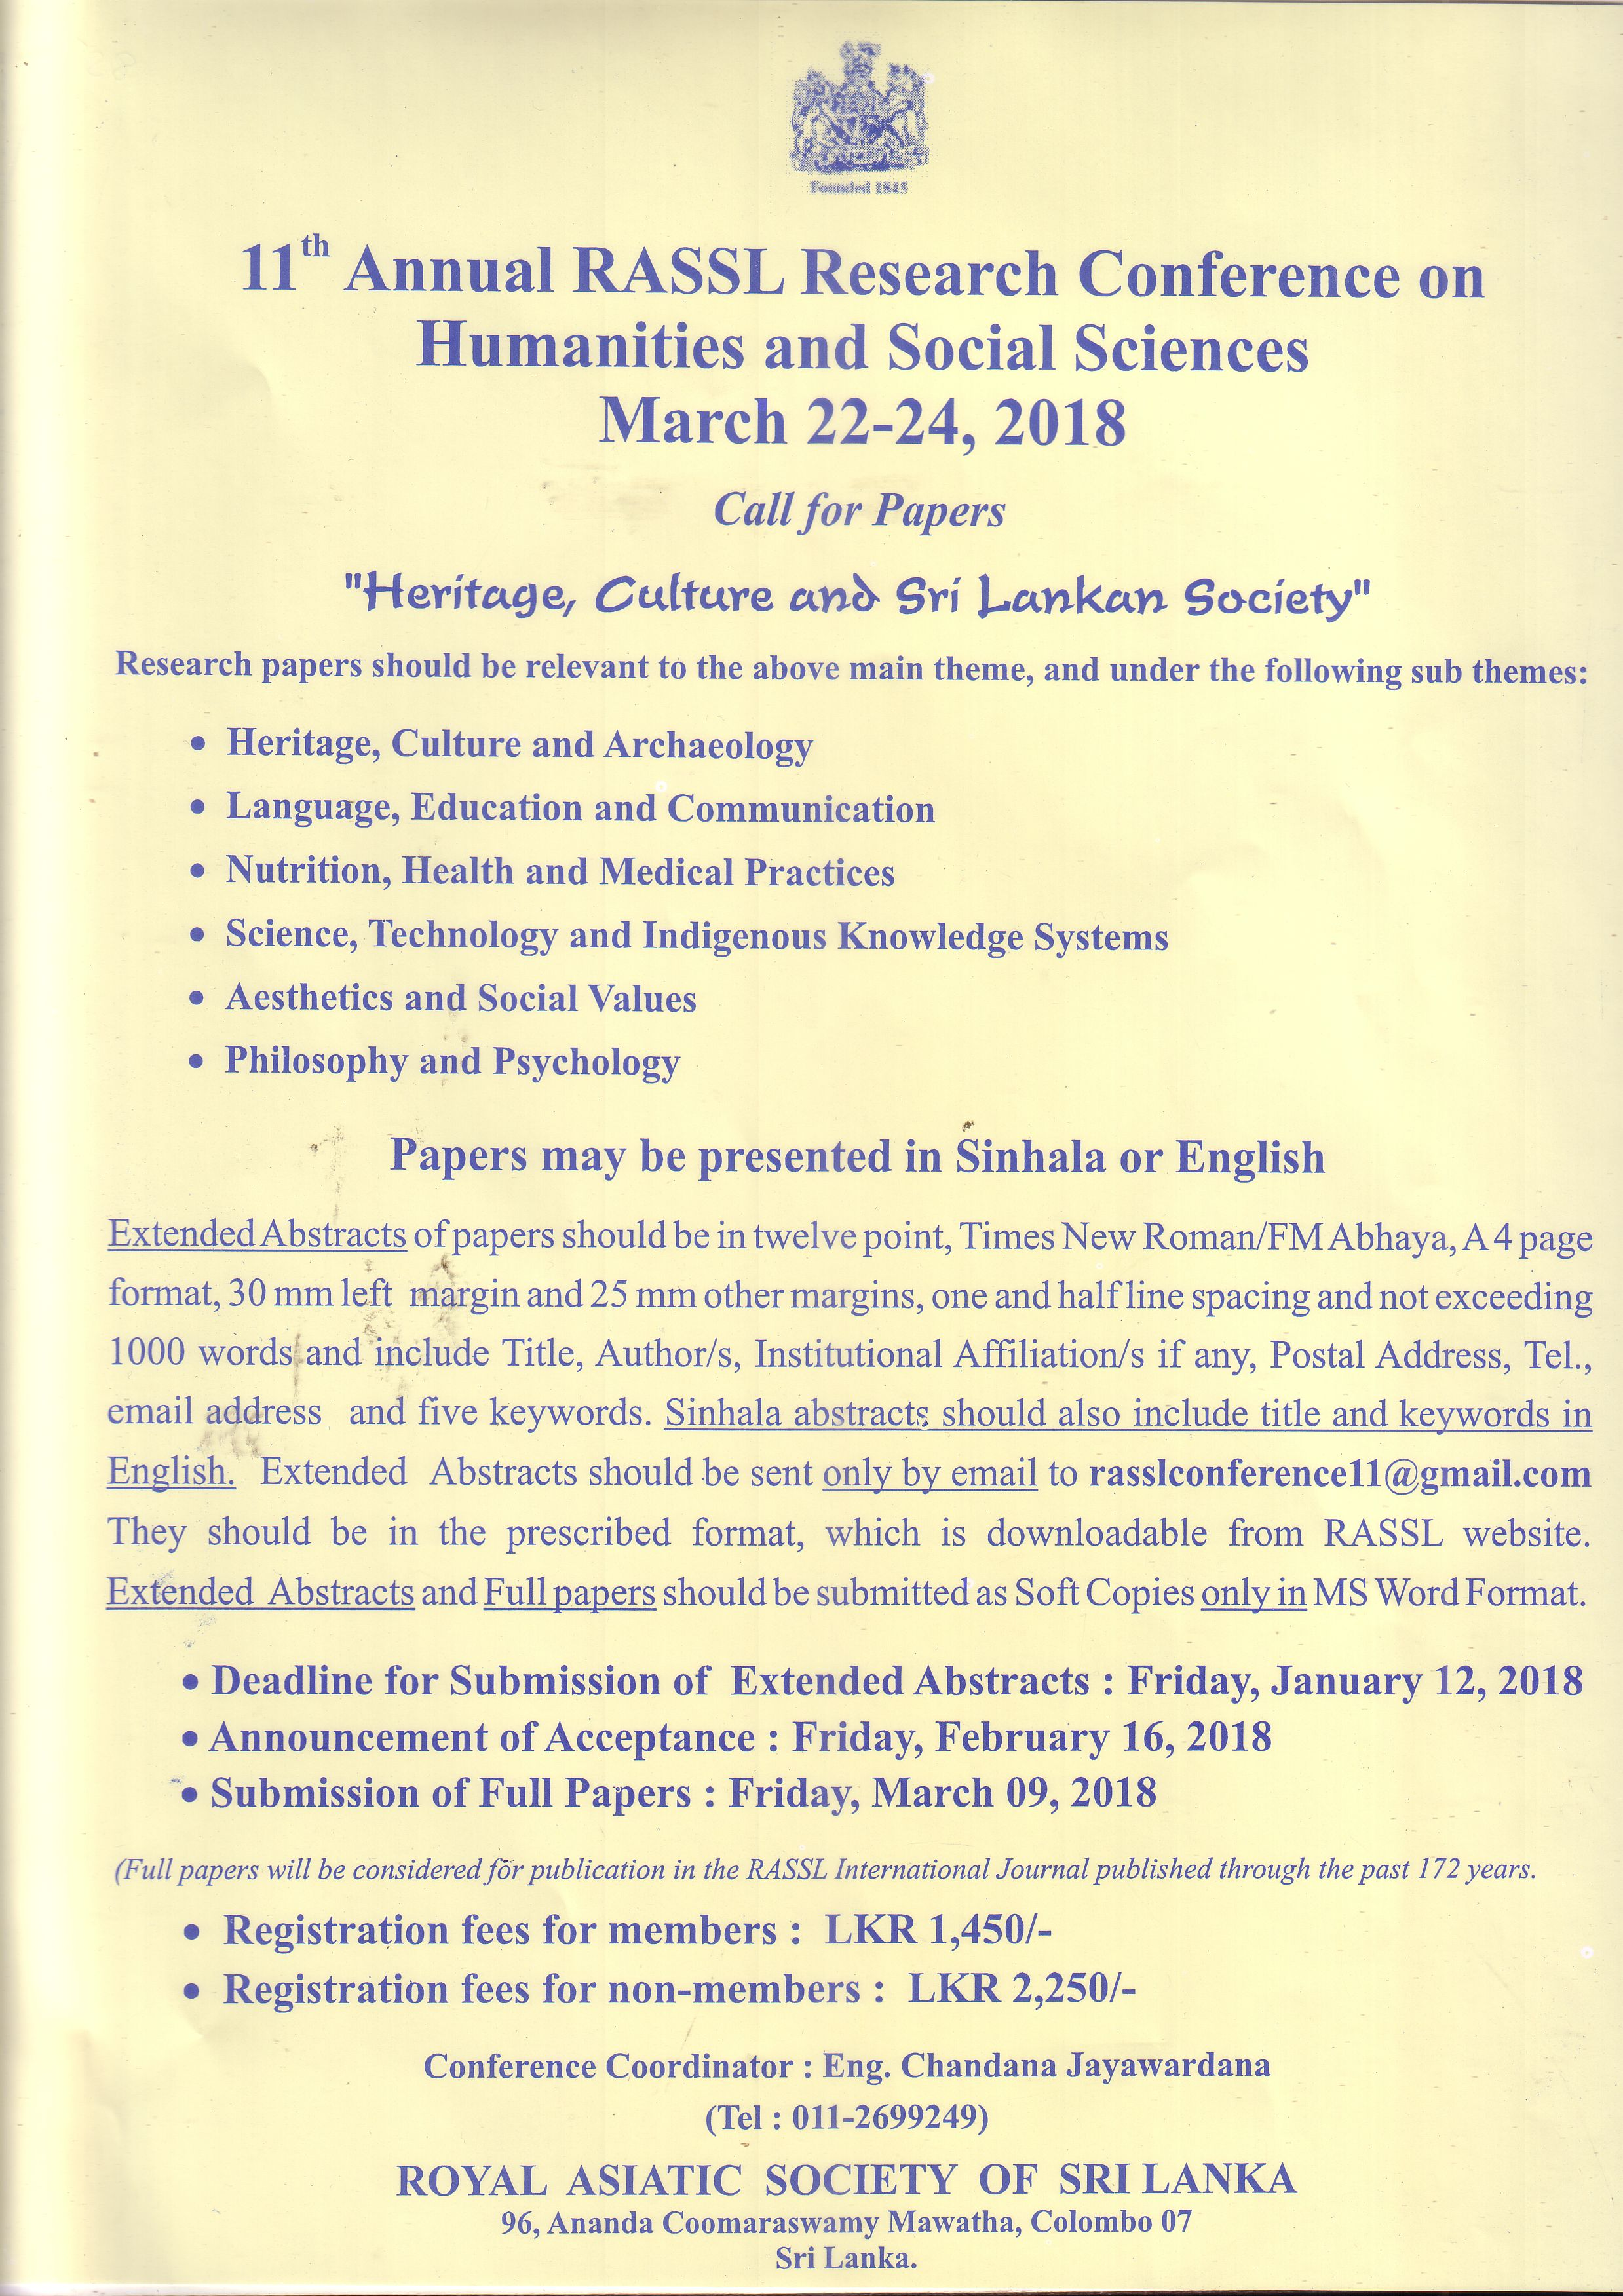 11th RASSL Annual Research Conference 2018 – Call for Papers | Royal